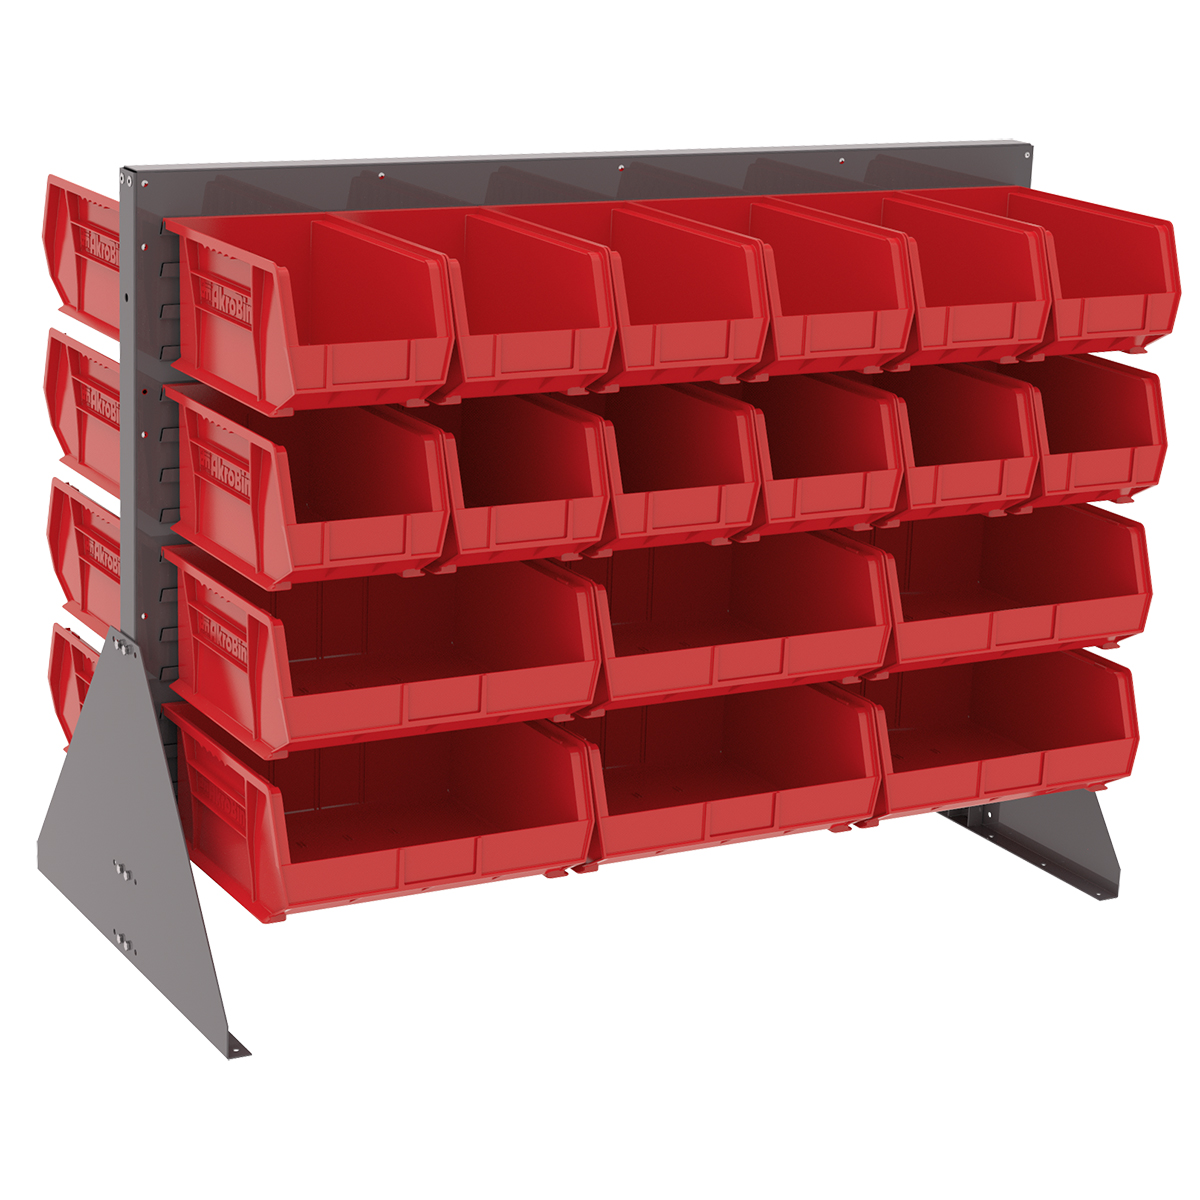 Item DISCONTINUED by Manufacturer.  Low Profile Floor Rack, 2-Sided w/ 36 AkroBins, Gray/Red (30607GYASSTR).  This item sold in carton quantities of 1.